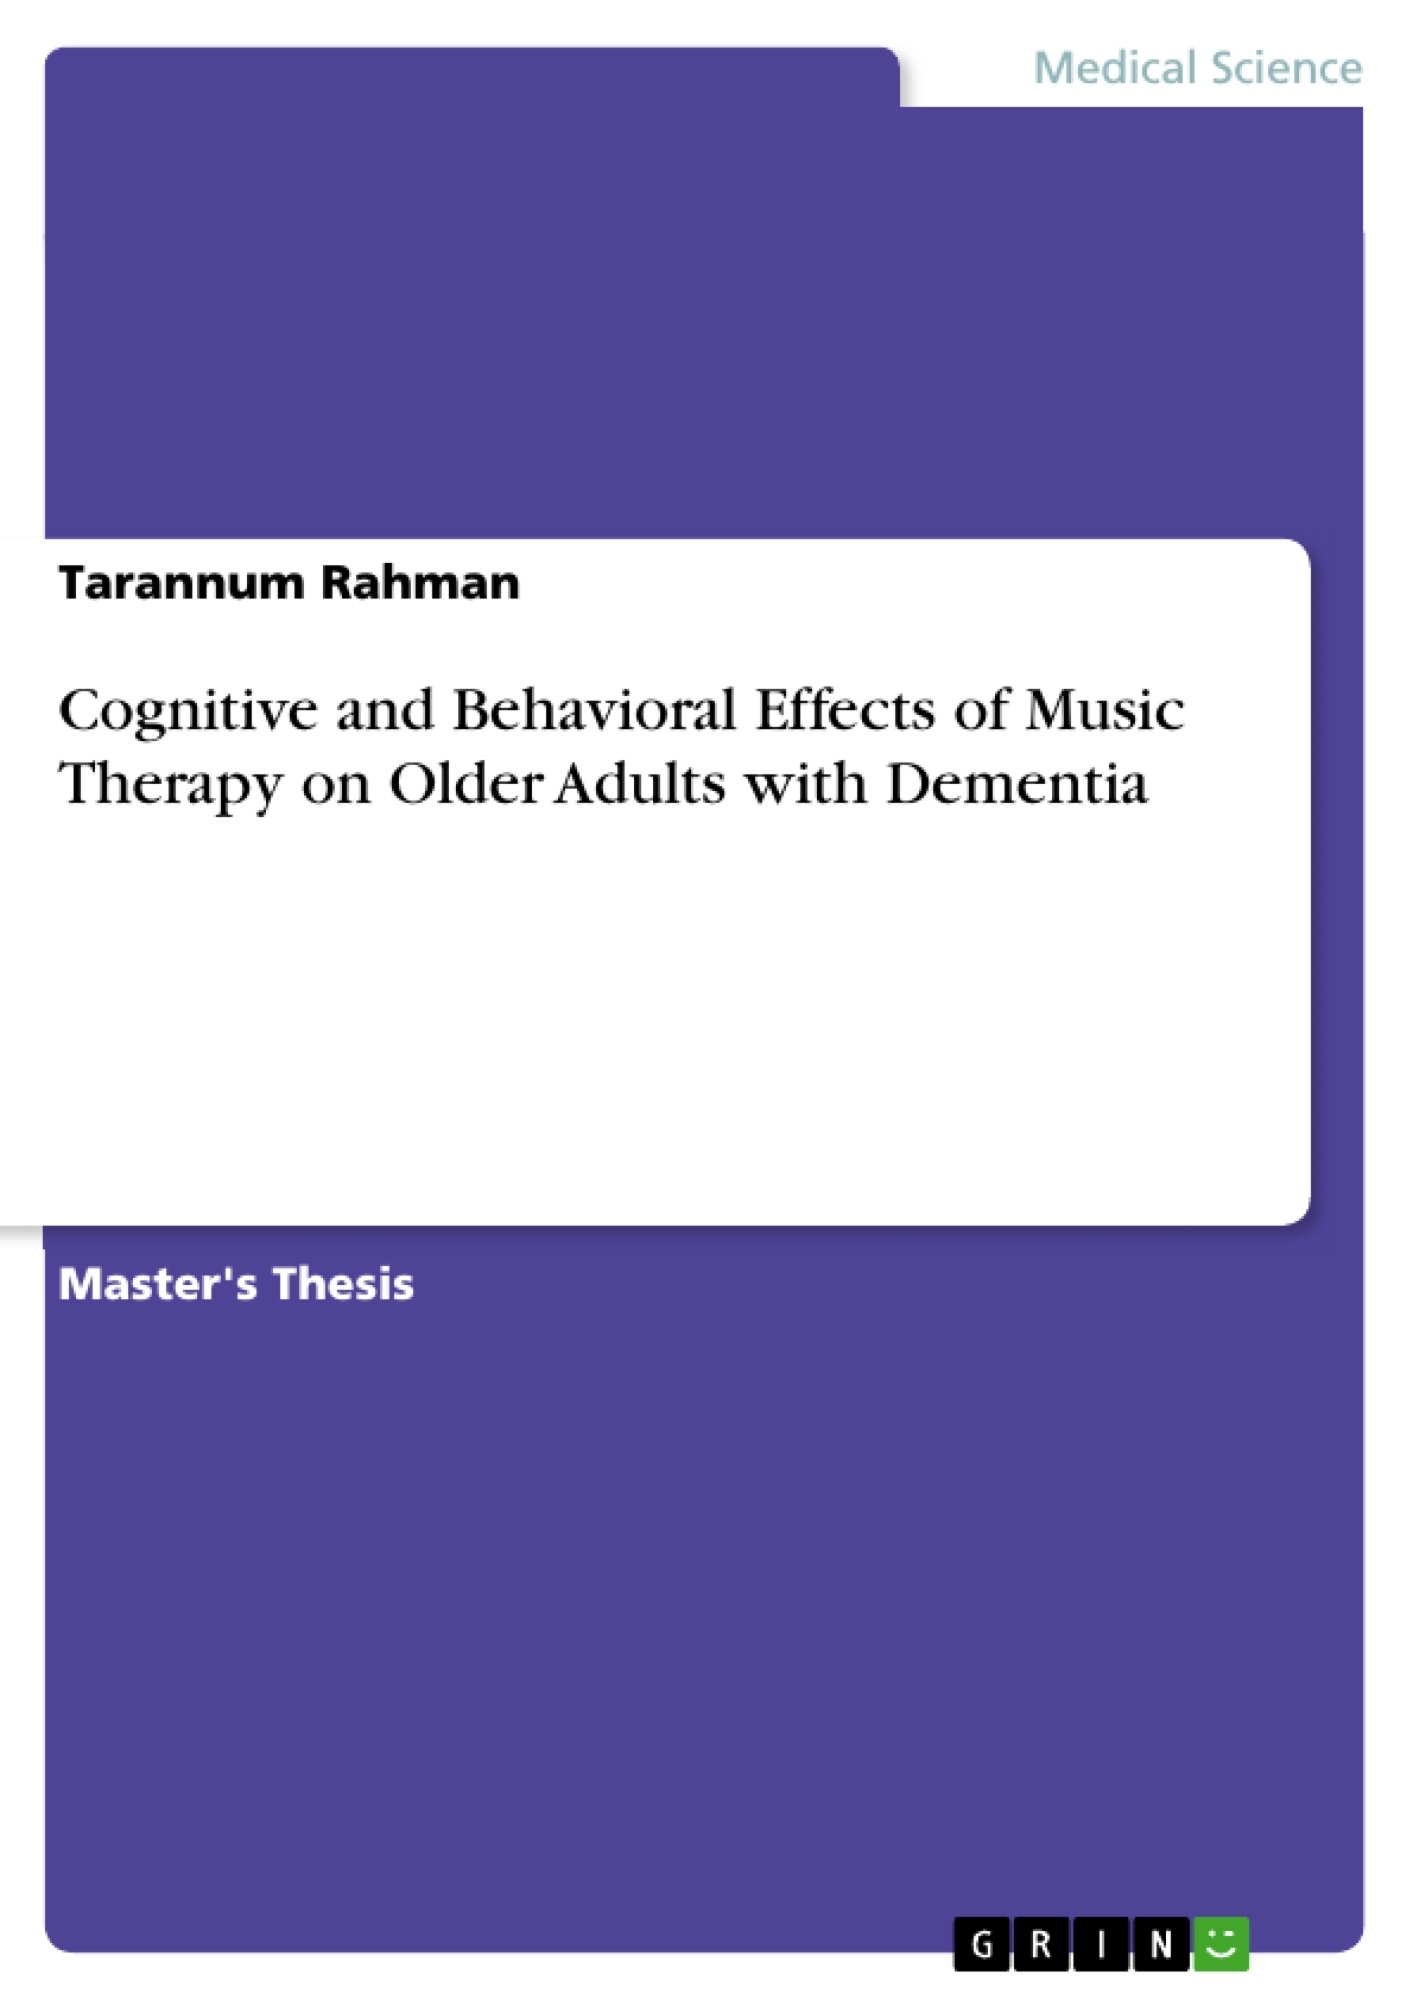 Title: Cognitive and Behavioral Effects of Music Therapy on Older Adults with Dementia